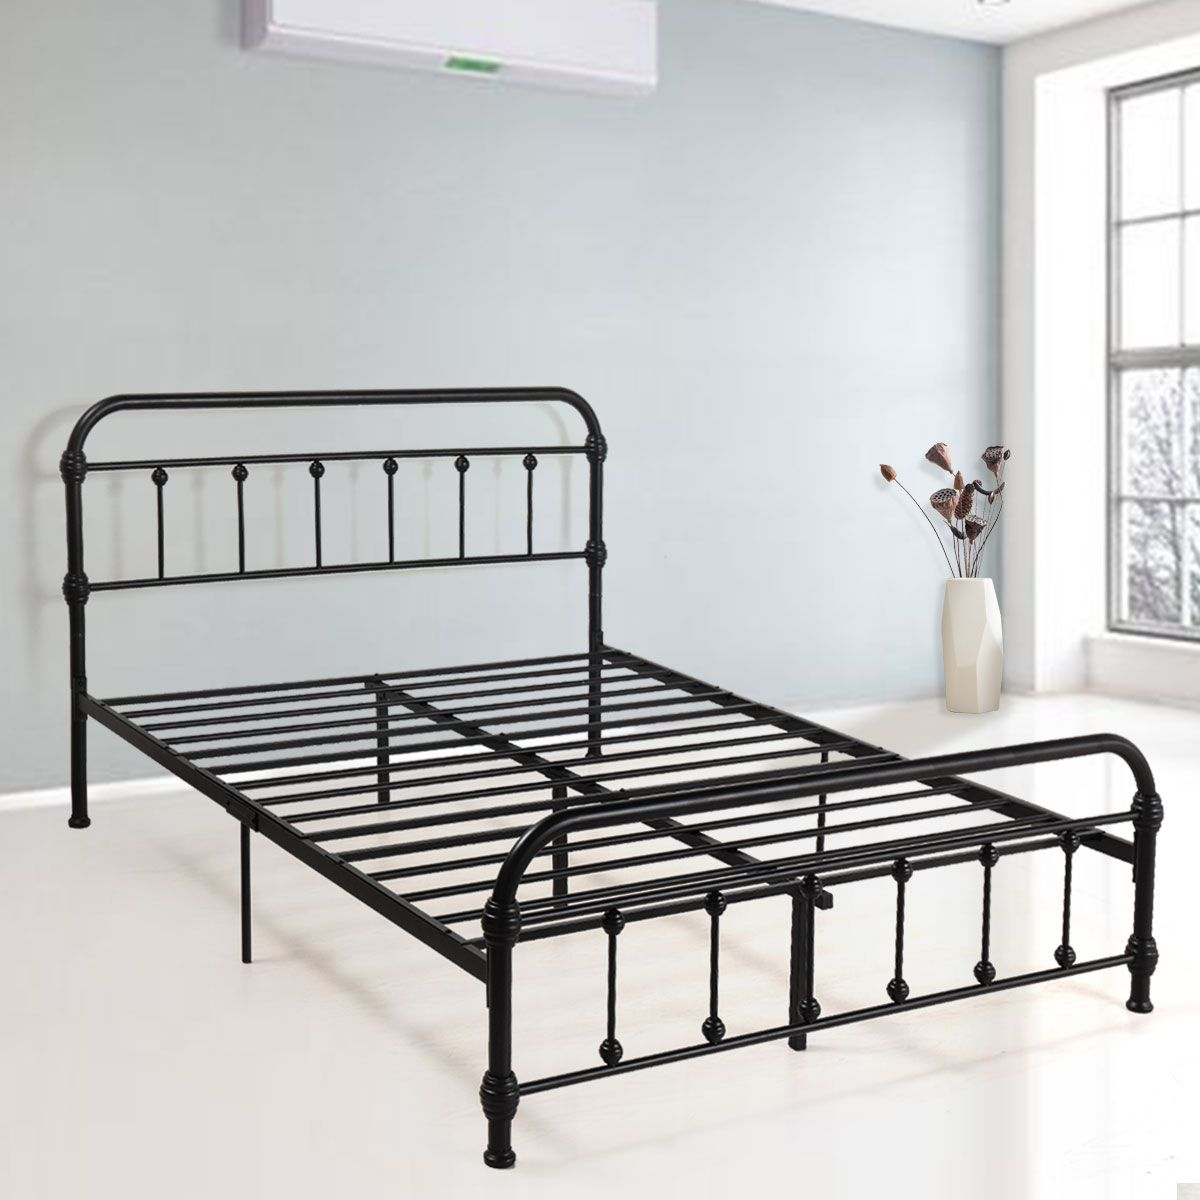 Home Metal Platform Bed Metal Bed Frame Metal Beds